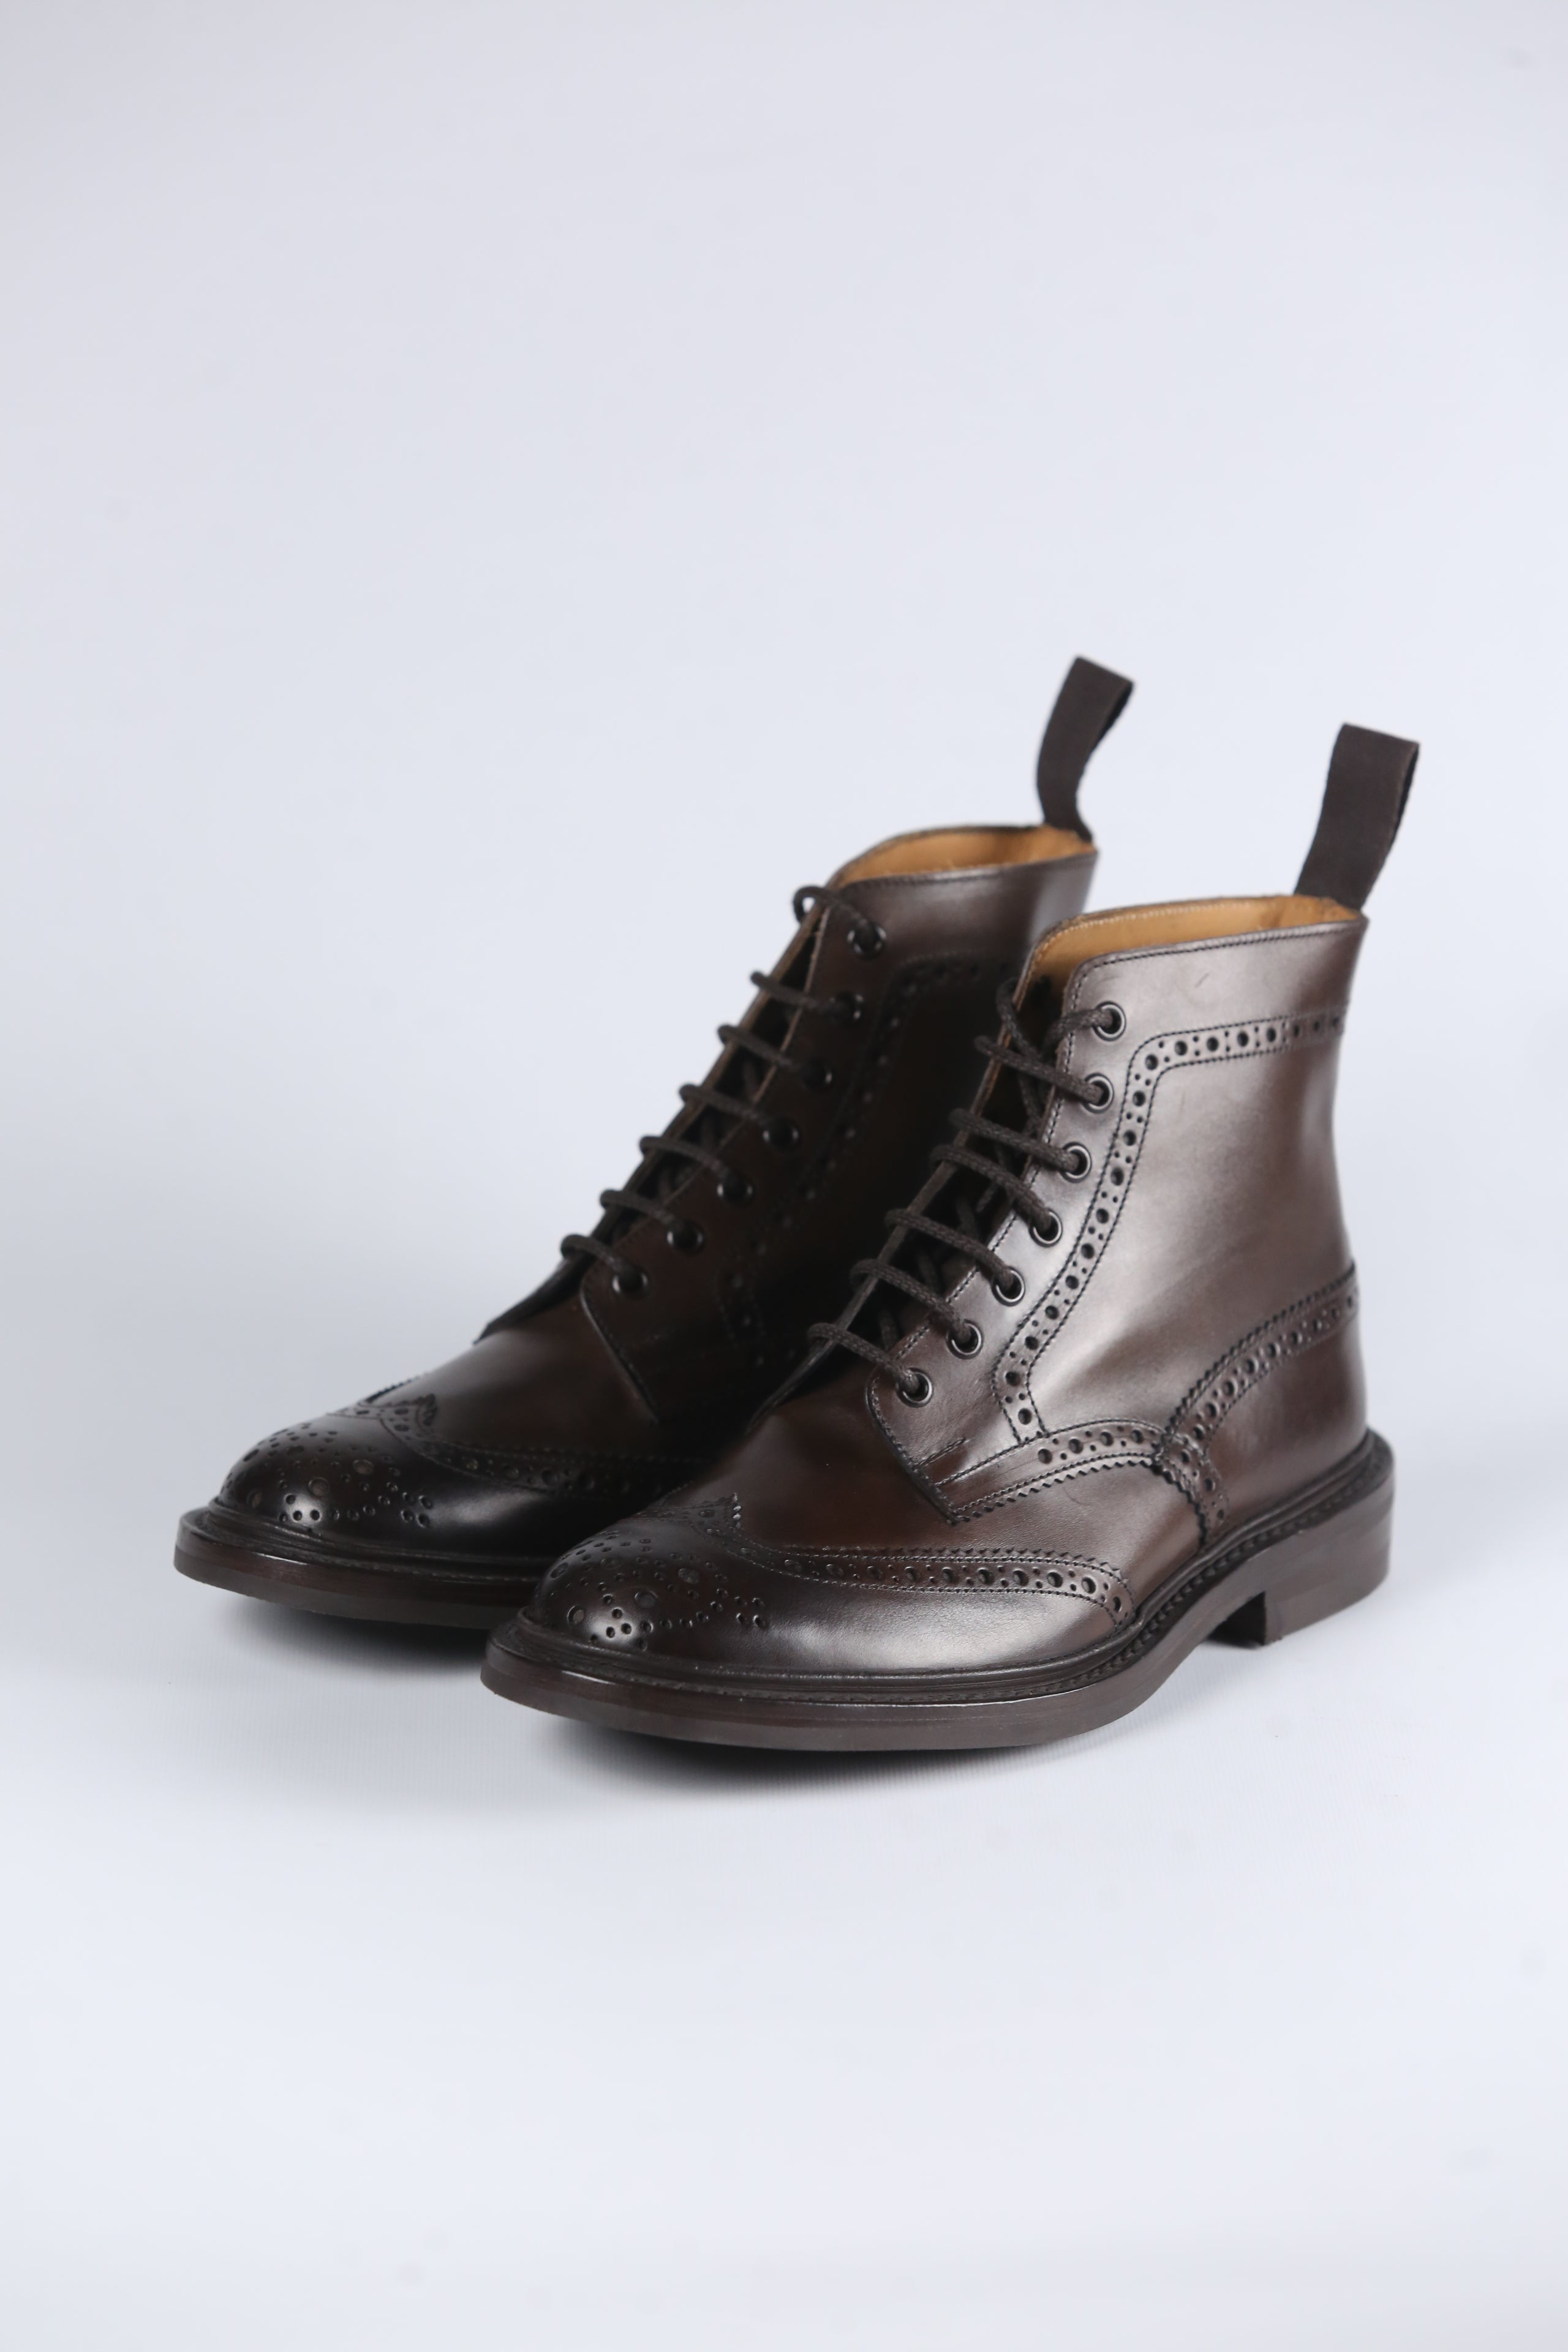 TRICKER'S - STOW CALF BROGUE TR15/07/171 - ESPRESSO